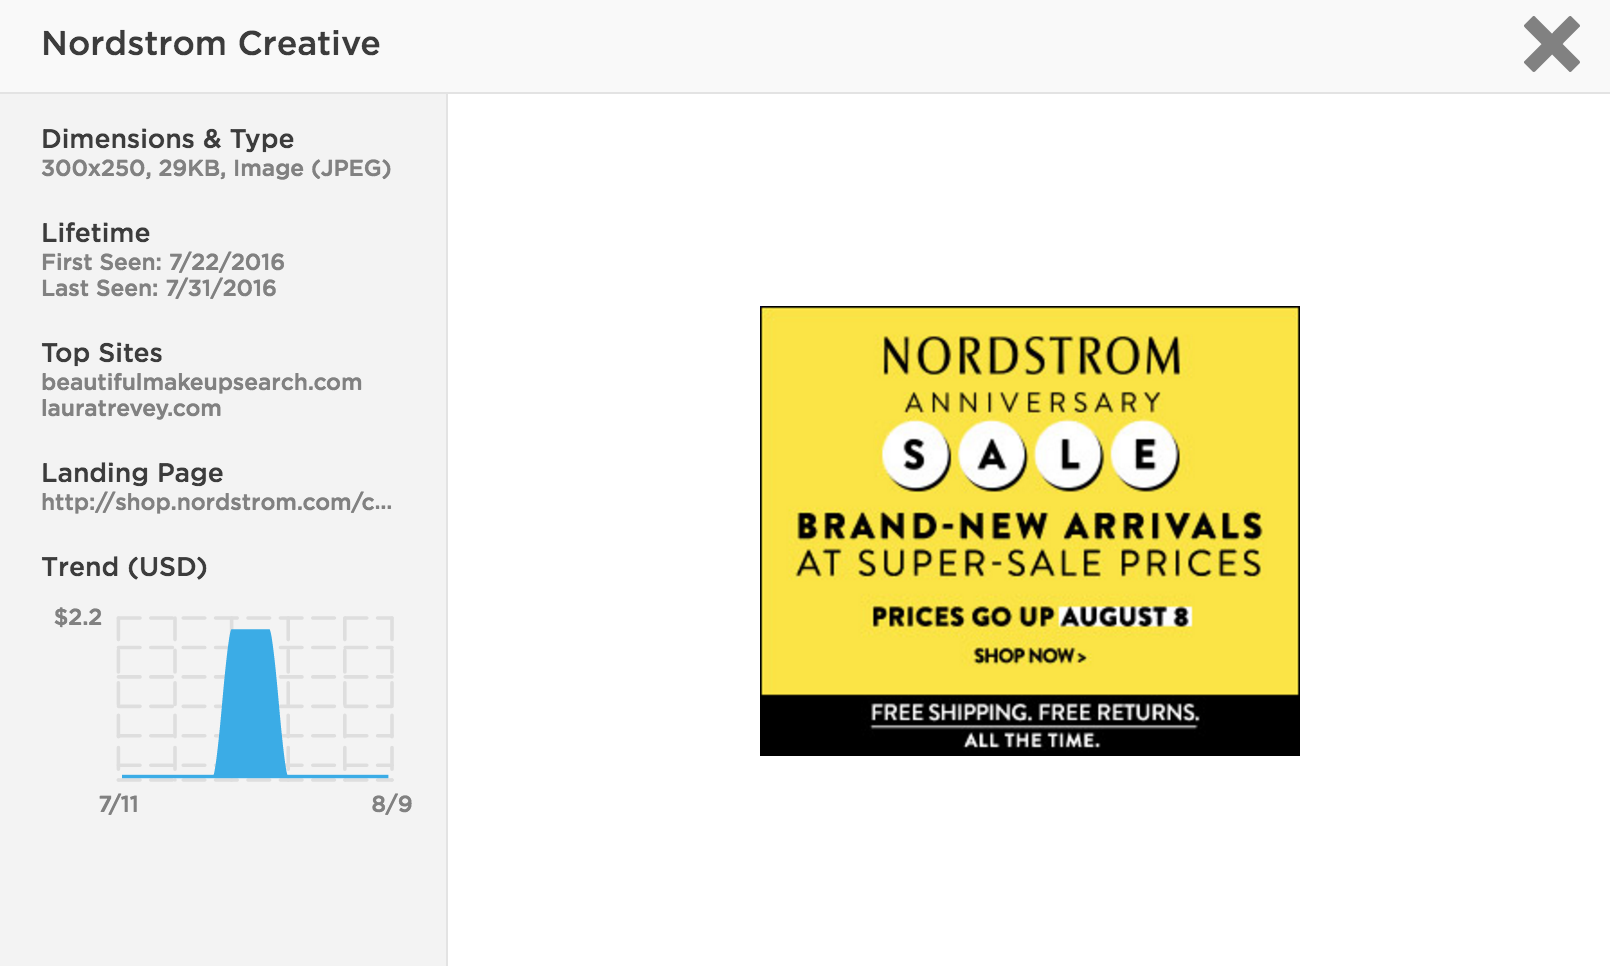 nordstrom_2016_creative.png